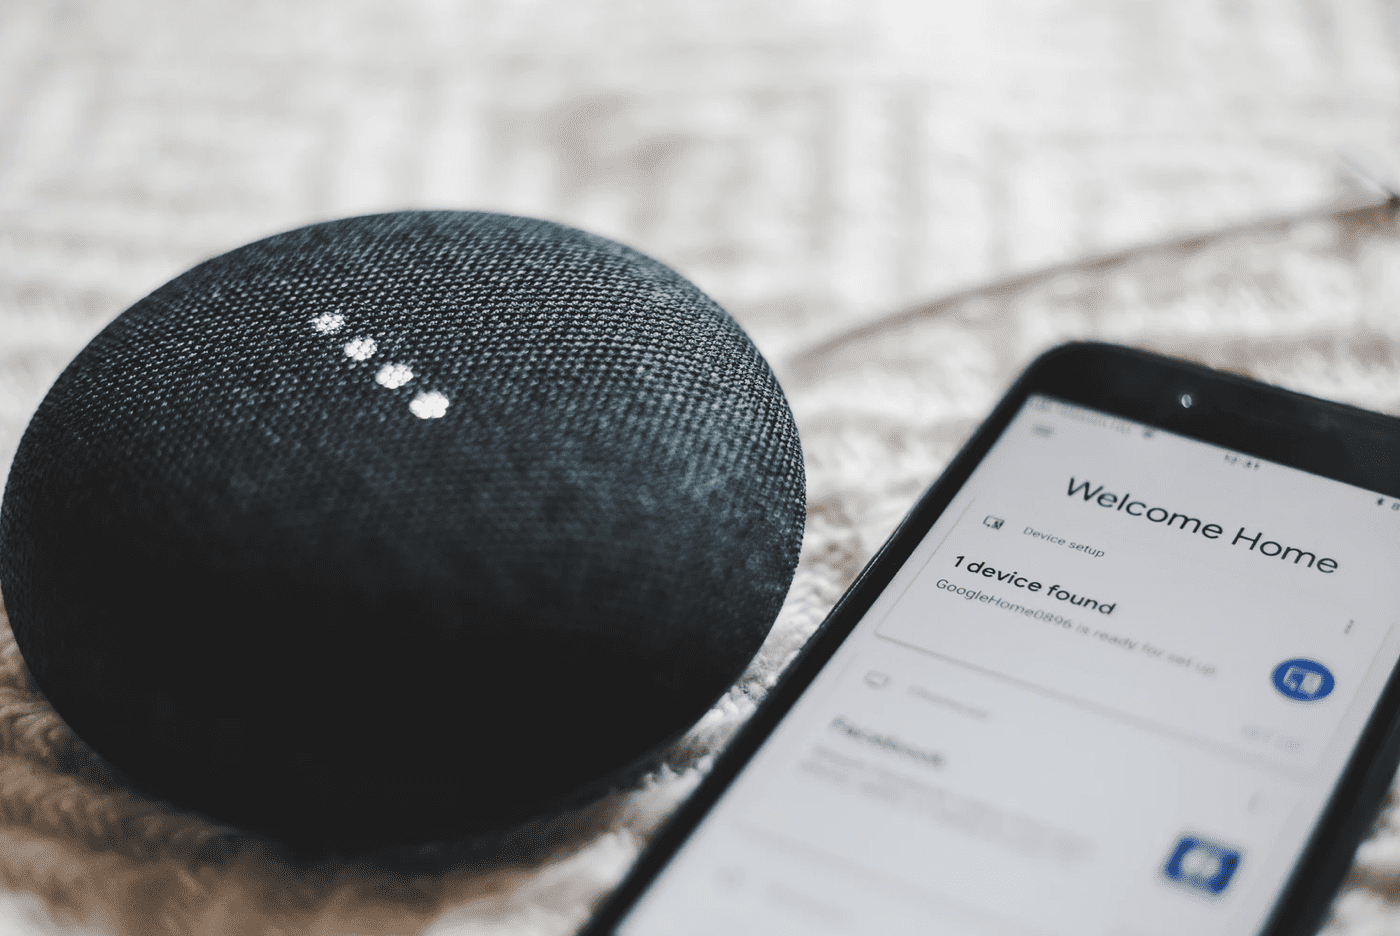 voice assistant app web technologies open on phone with voice assistant product beside it